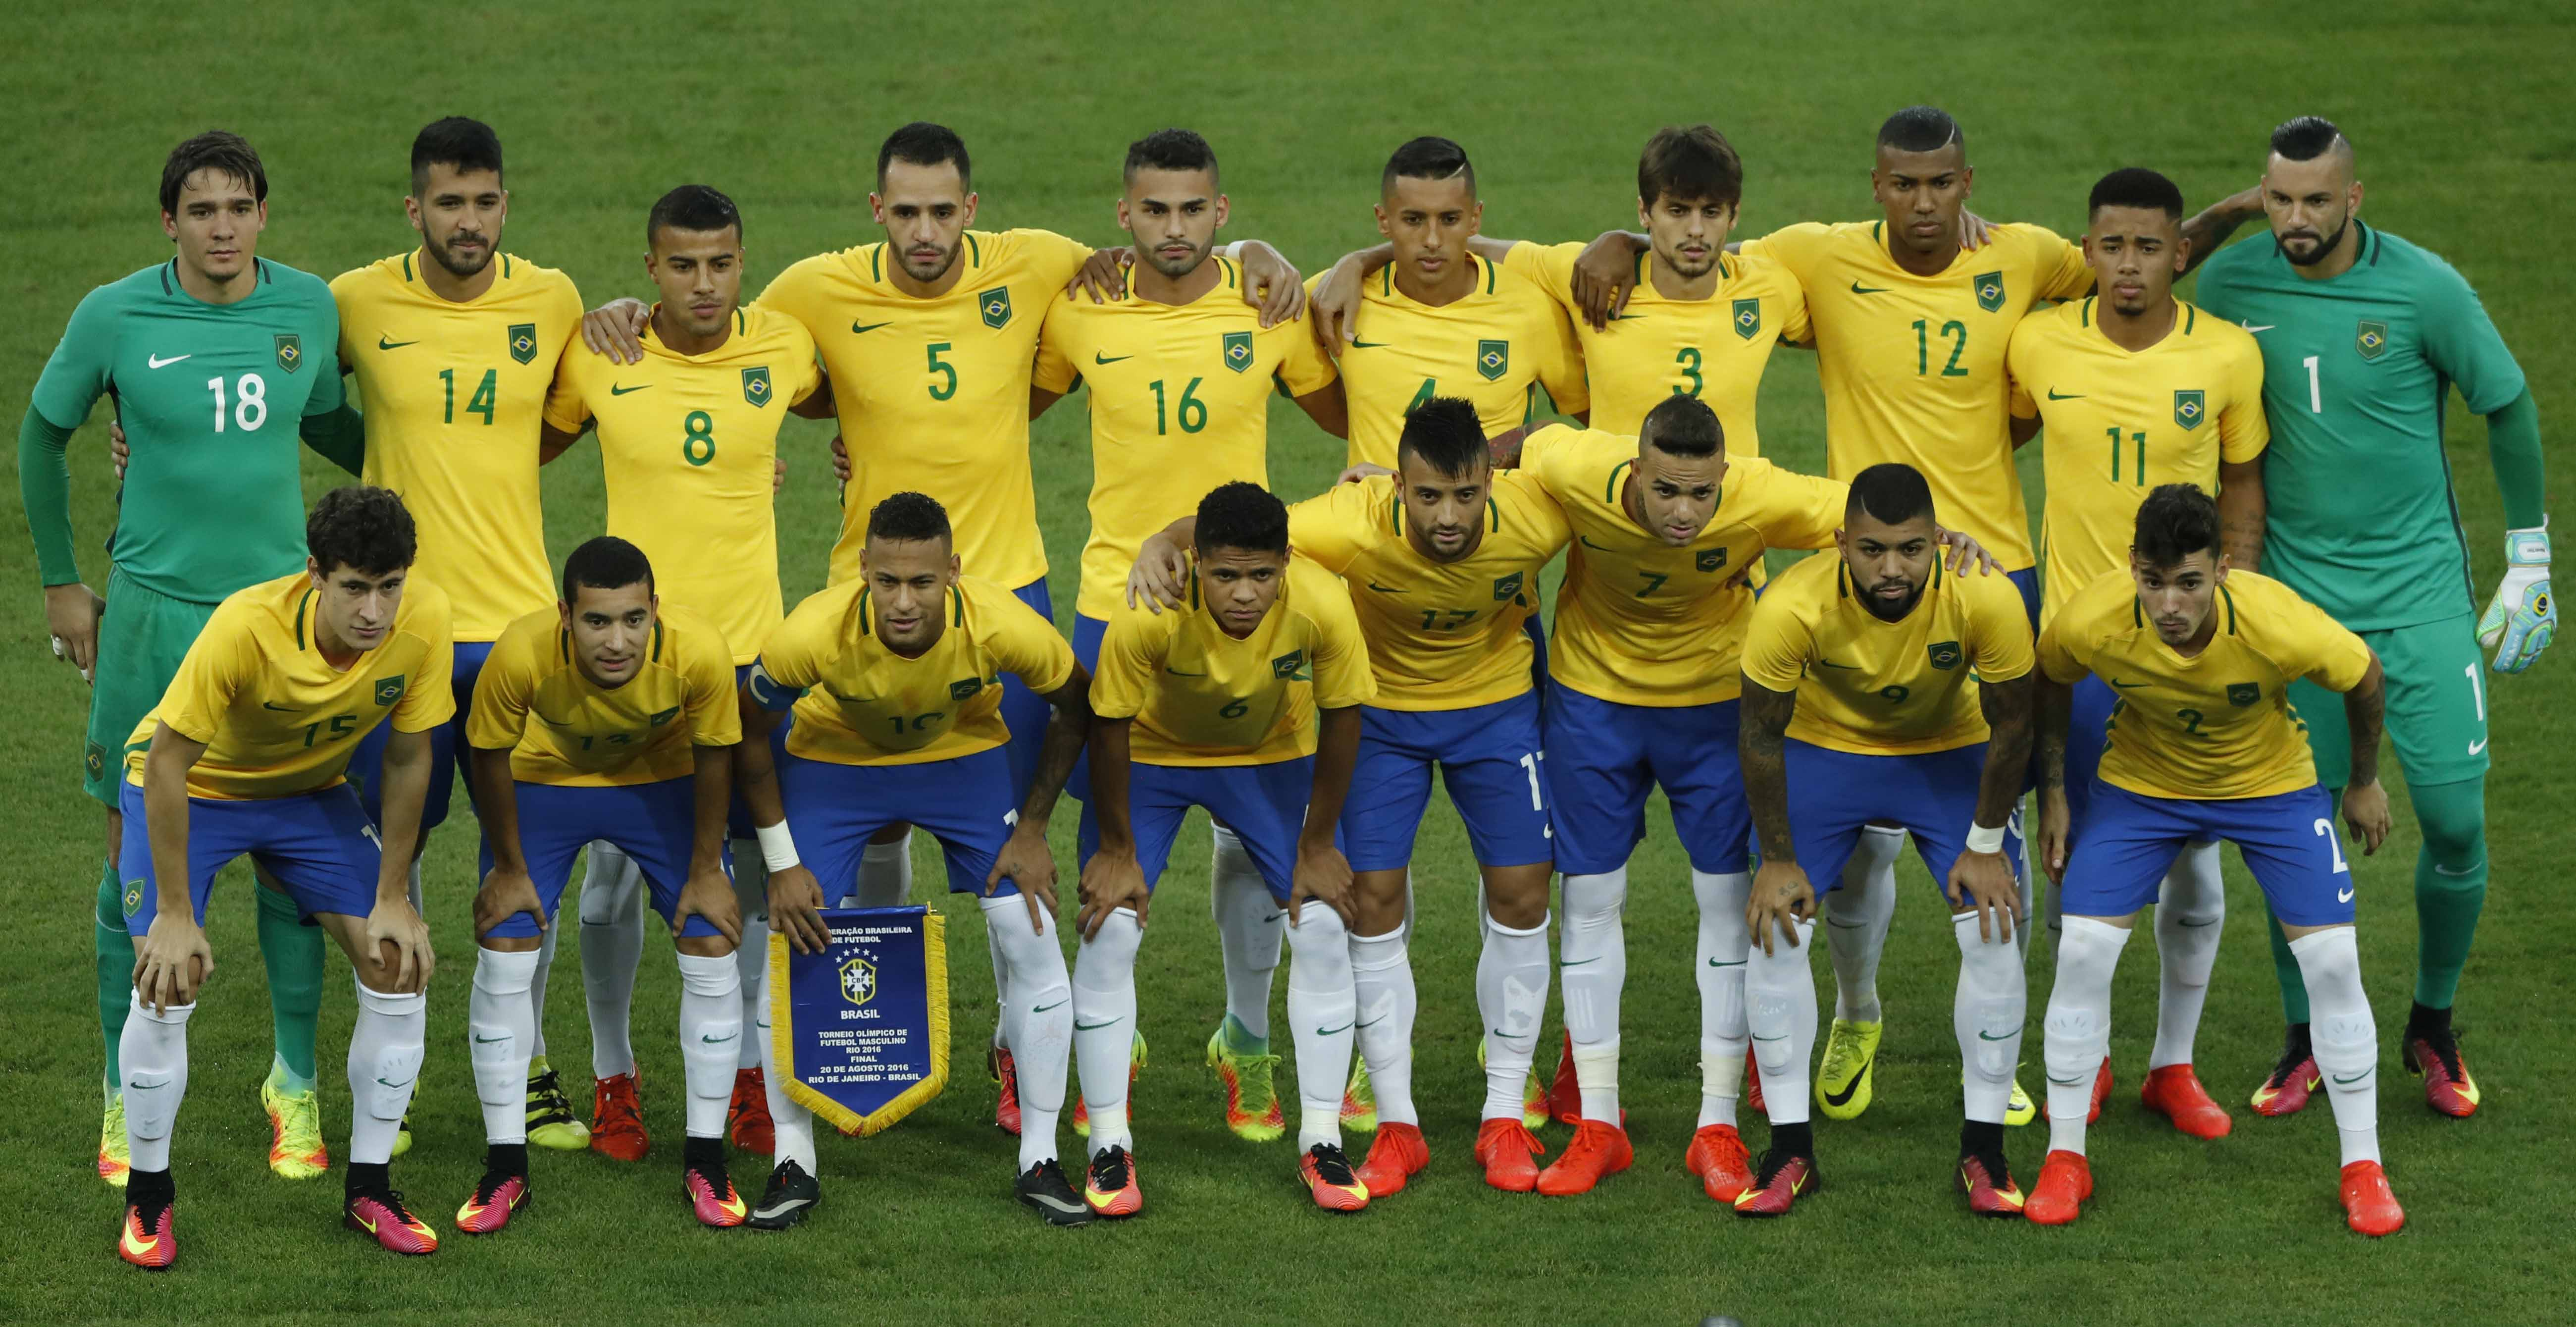 Men's soccer Gold Medal Match between Brazil and Germany during the Rio 2016 Olympic Games at the Maracana in Rio de Janeiro, Brazil, 20 August 2016. - Sipa USA